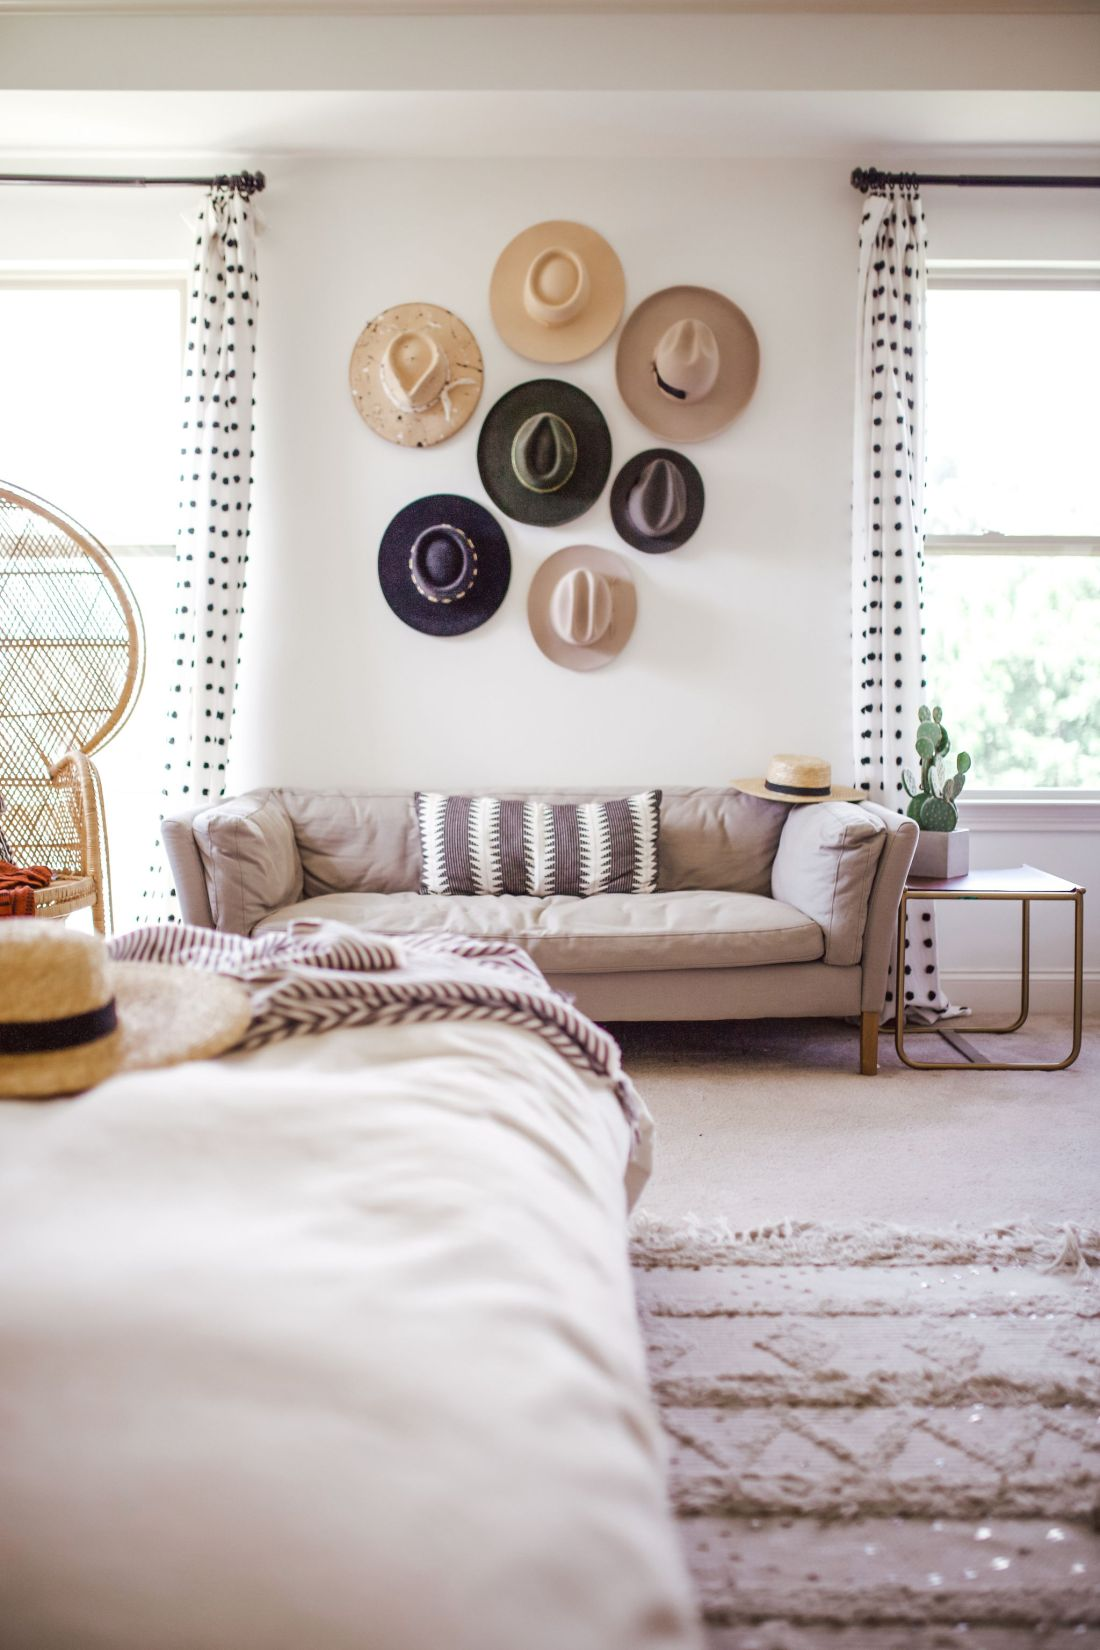 master bedroom refresh | Master Bedroom Remodel Ideas by popular Nashville life and style blog, Modern Day Moguls: image of a hat display on a wall above a beige couch that's next to a peacock chair and a end table with a cactus on it.